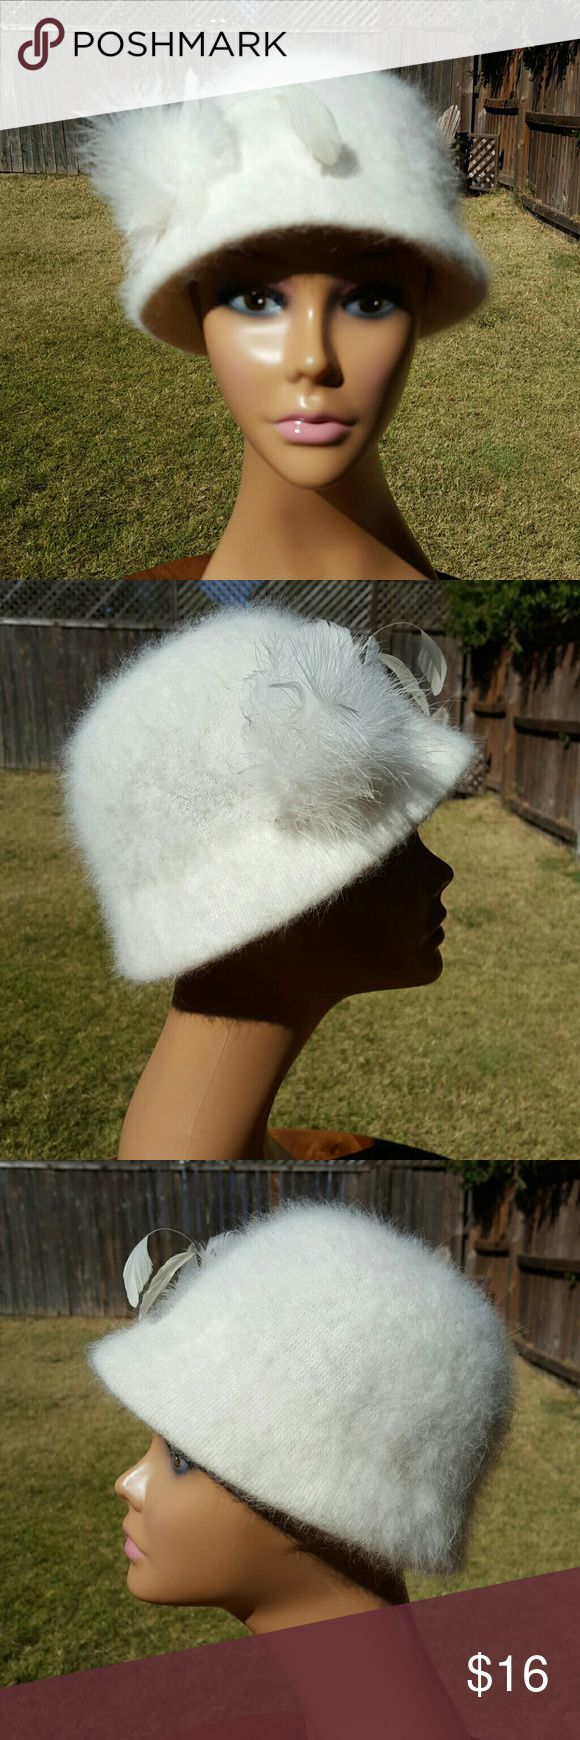 Morgan De Toi Hat Gorgeous soft white hat with feathers, Made in Italy Elastic band inside to stay in place. Morgan De Toi  Accessories Hats